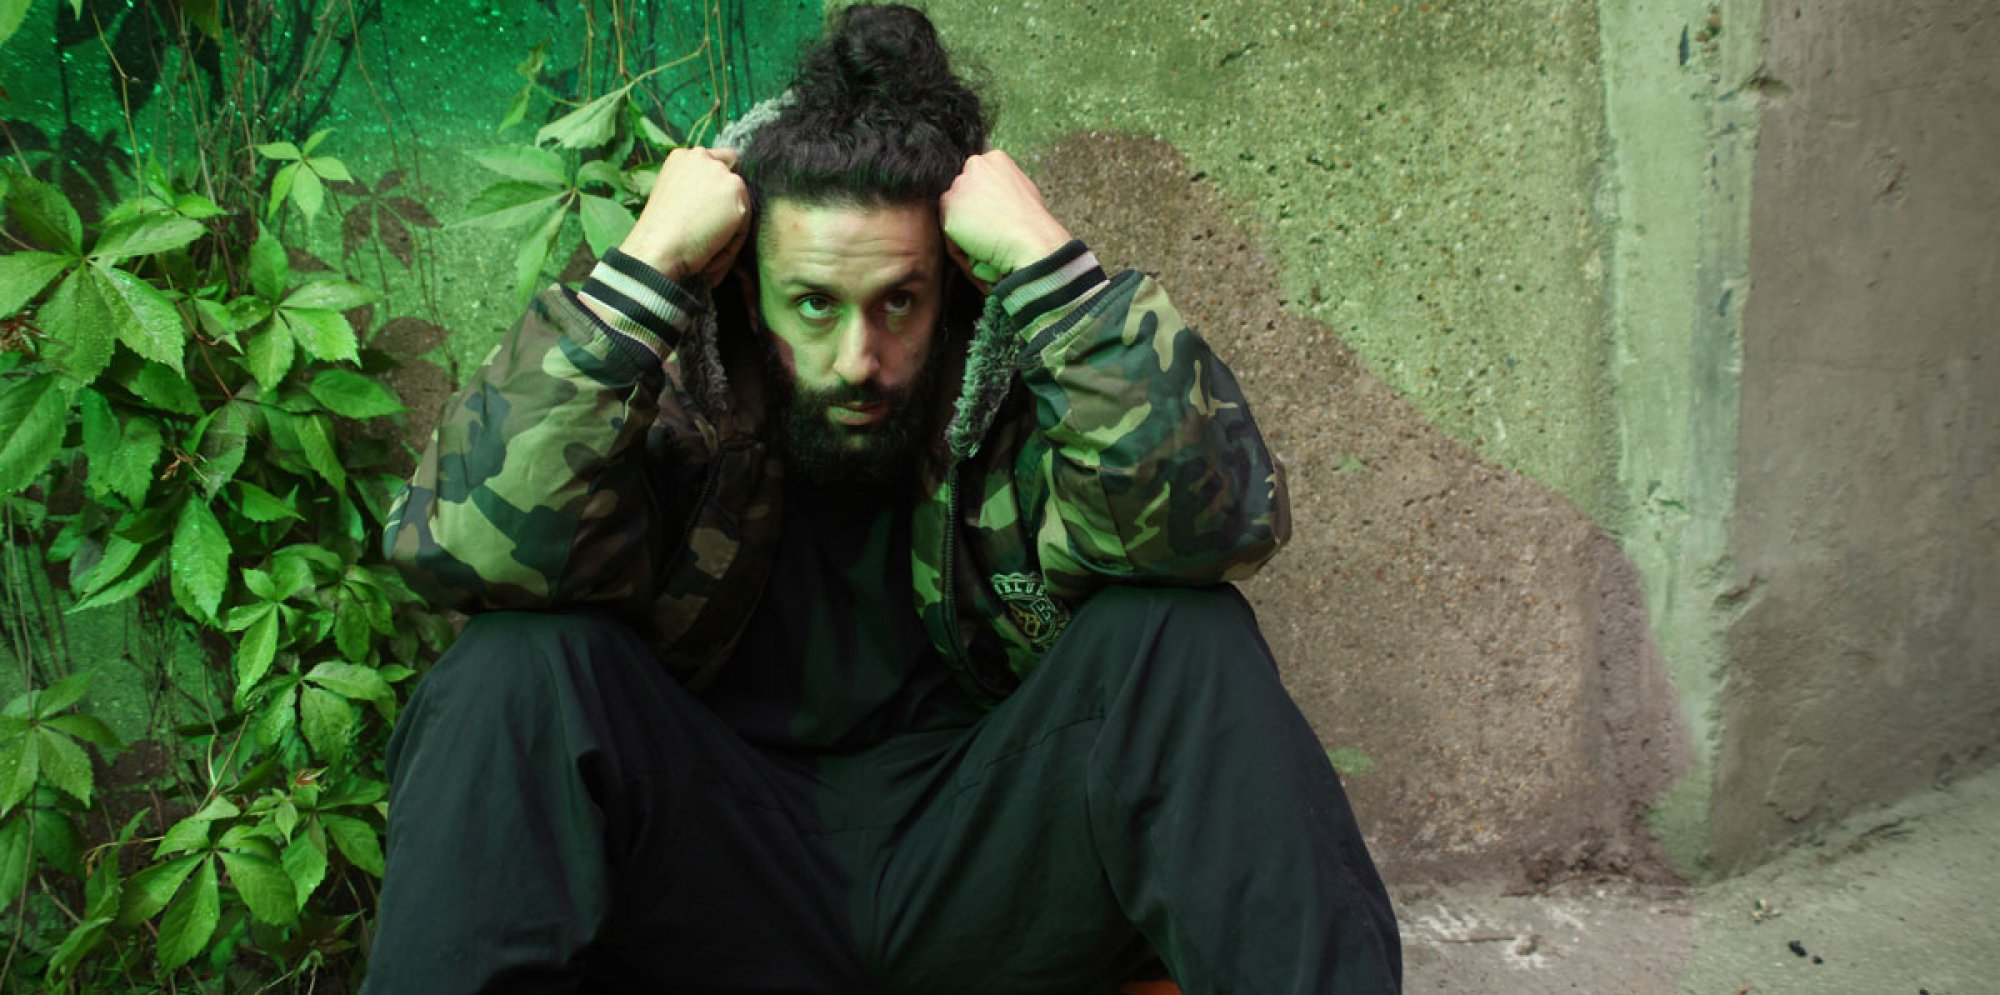 A photo of a man sitting on the ground wearing a green bomber jacket, head in hands, leaning on a vine-covered concrete wall.